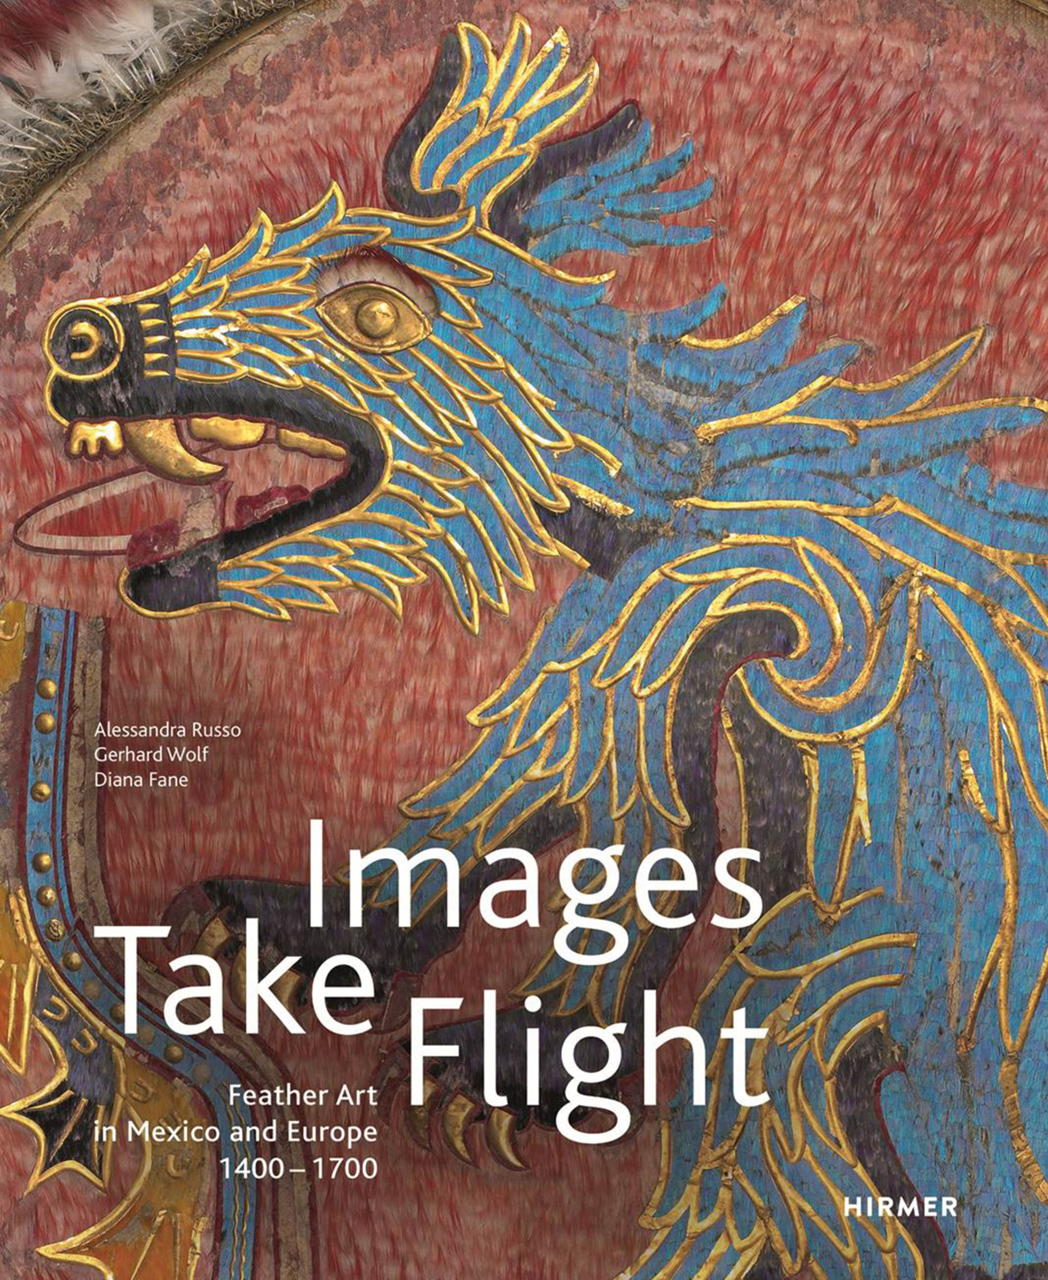 Cover of 'Images Take Flight: Feather Art in Mexico and Europe' (click to enlarge)